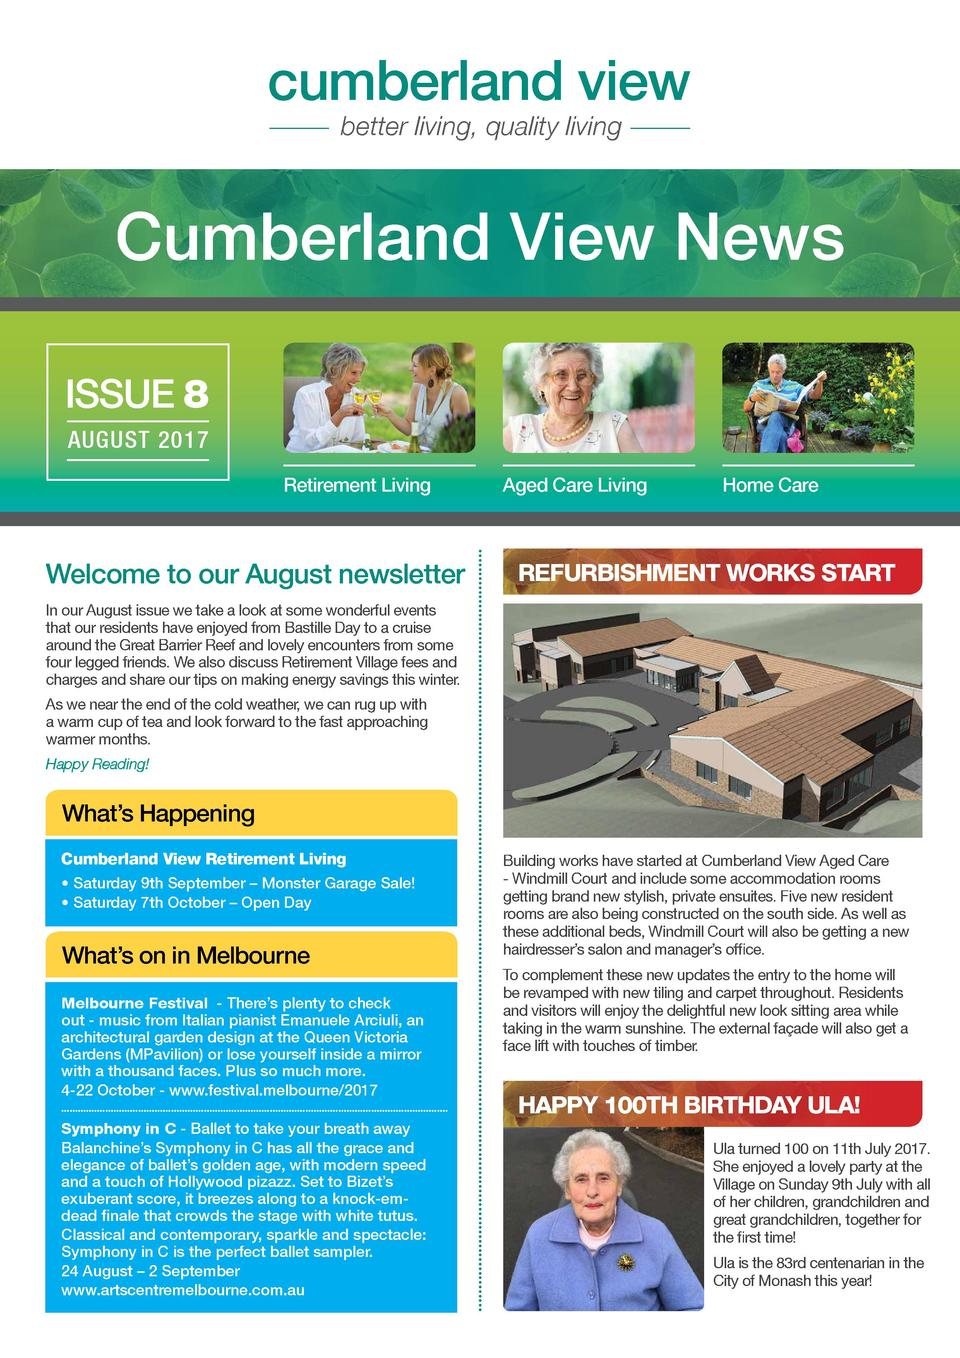 cumberland view better living, quality living  Cumberland View News ISSUE 8 AUGUST 2017 Retirement Living  Welcome to our ...